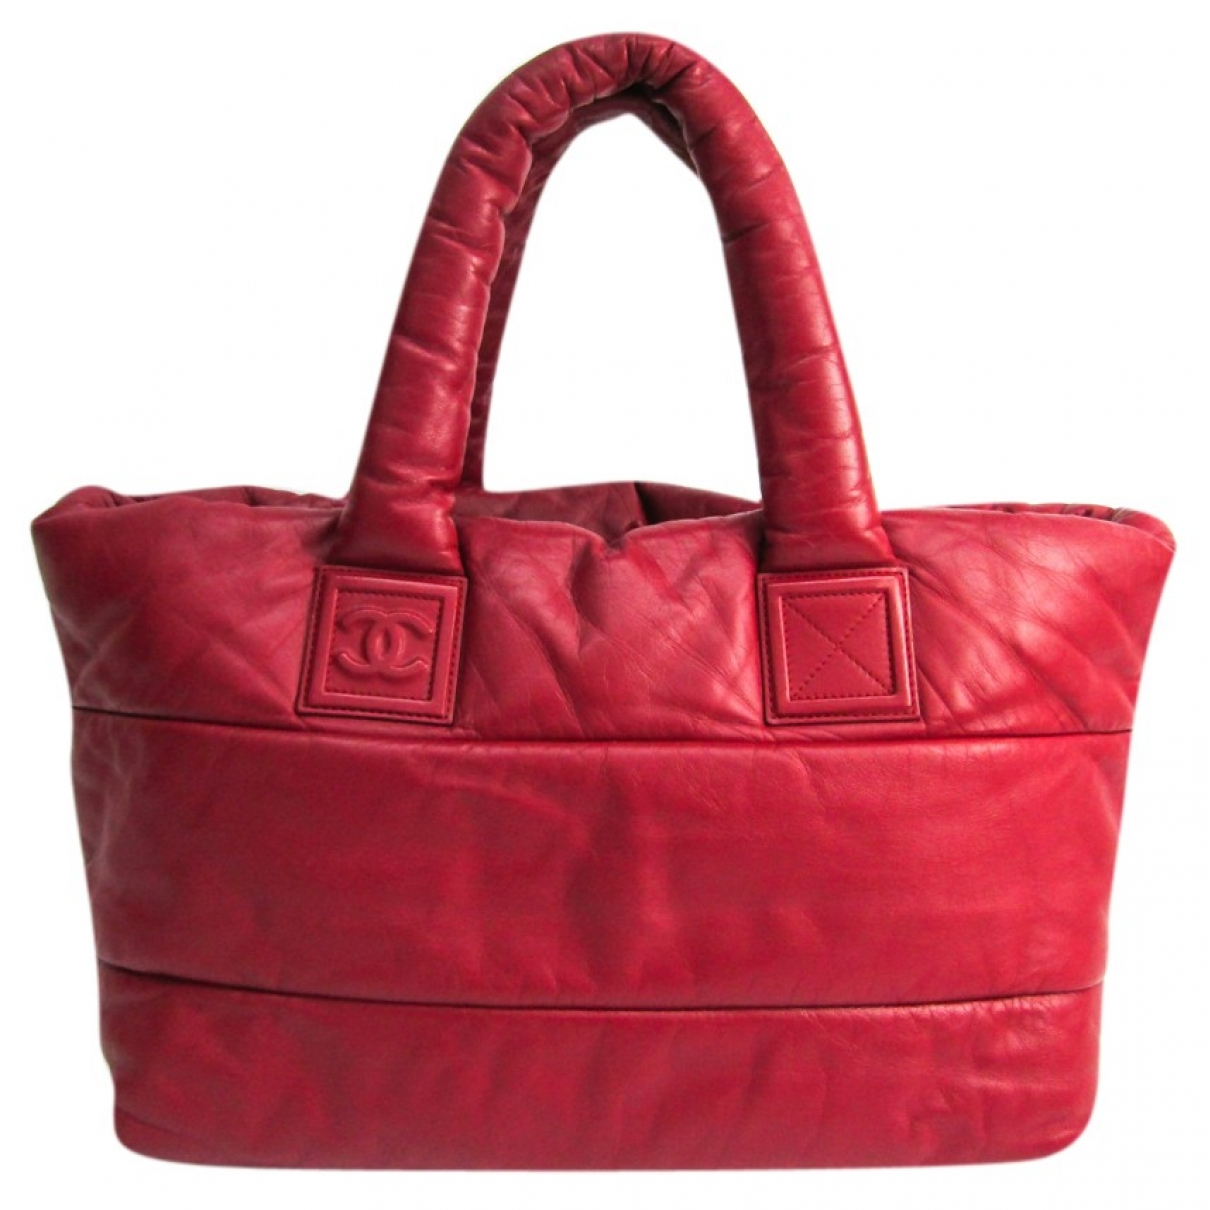 Chanel Coco Cocoon Red Leather handbag for Women \N